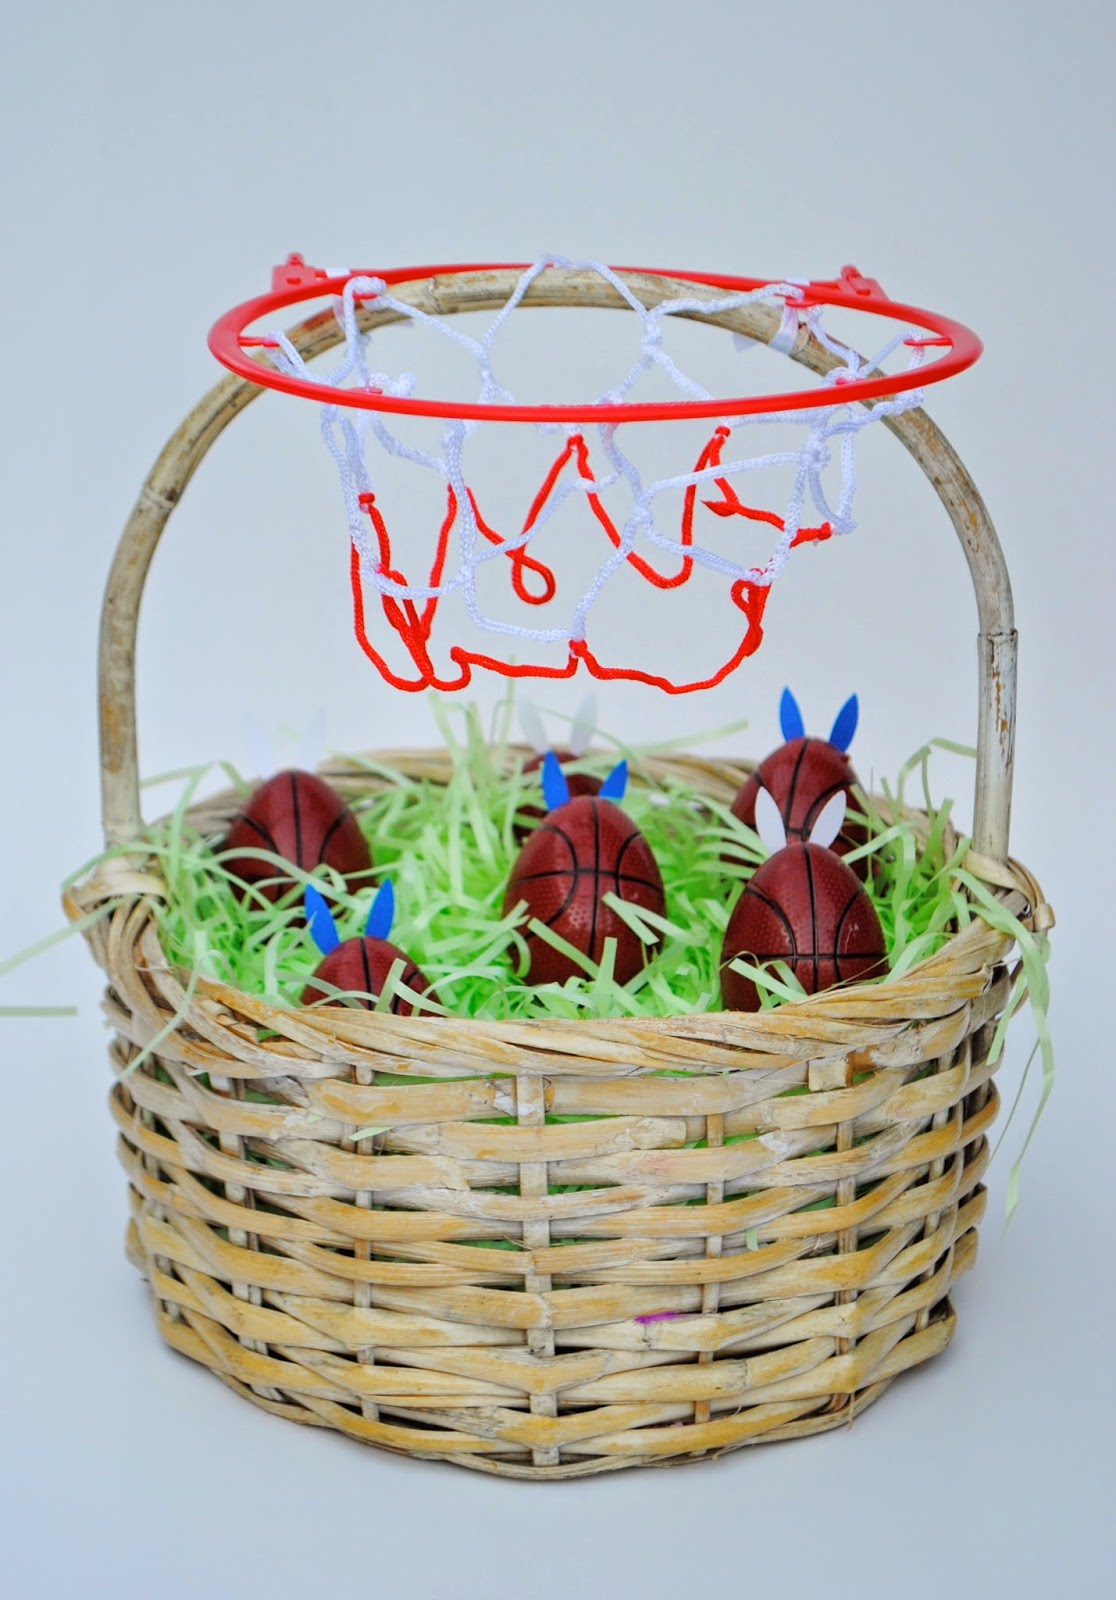 Jac o lyn murphy easter basketll sports themed easter i hope it will be a slam dunk negle Choice Image